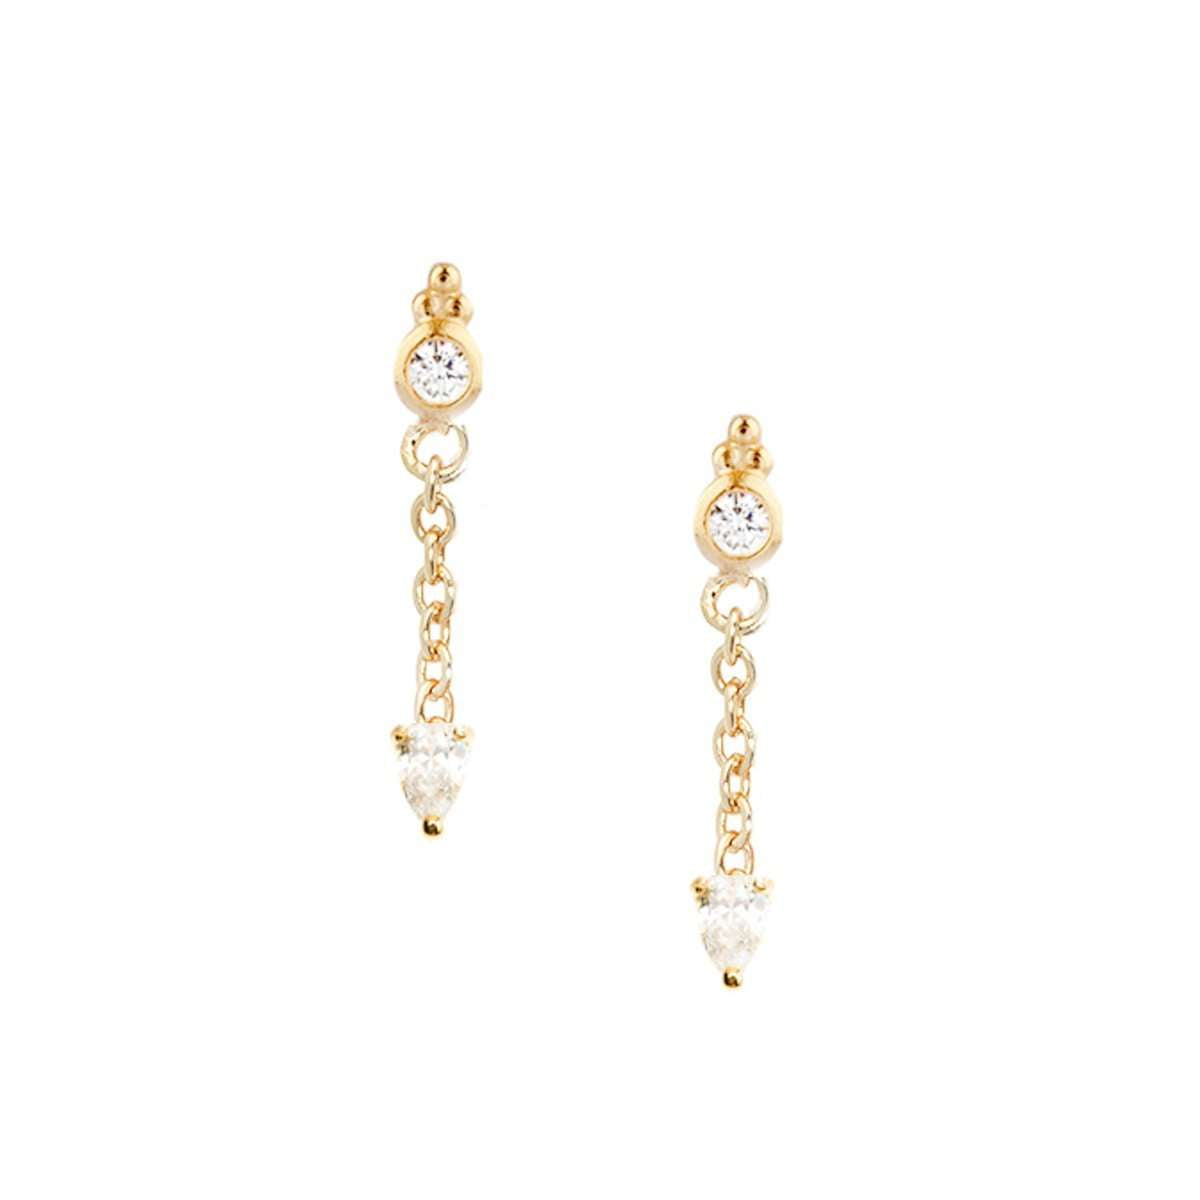 whitney-ballerina-earringearrings-jewelry